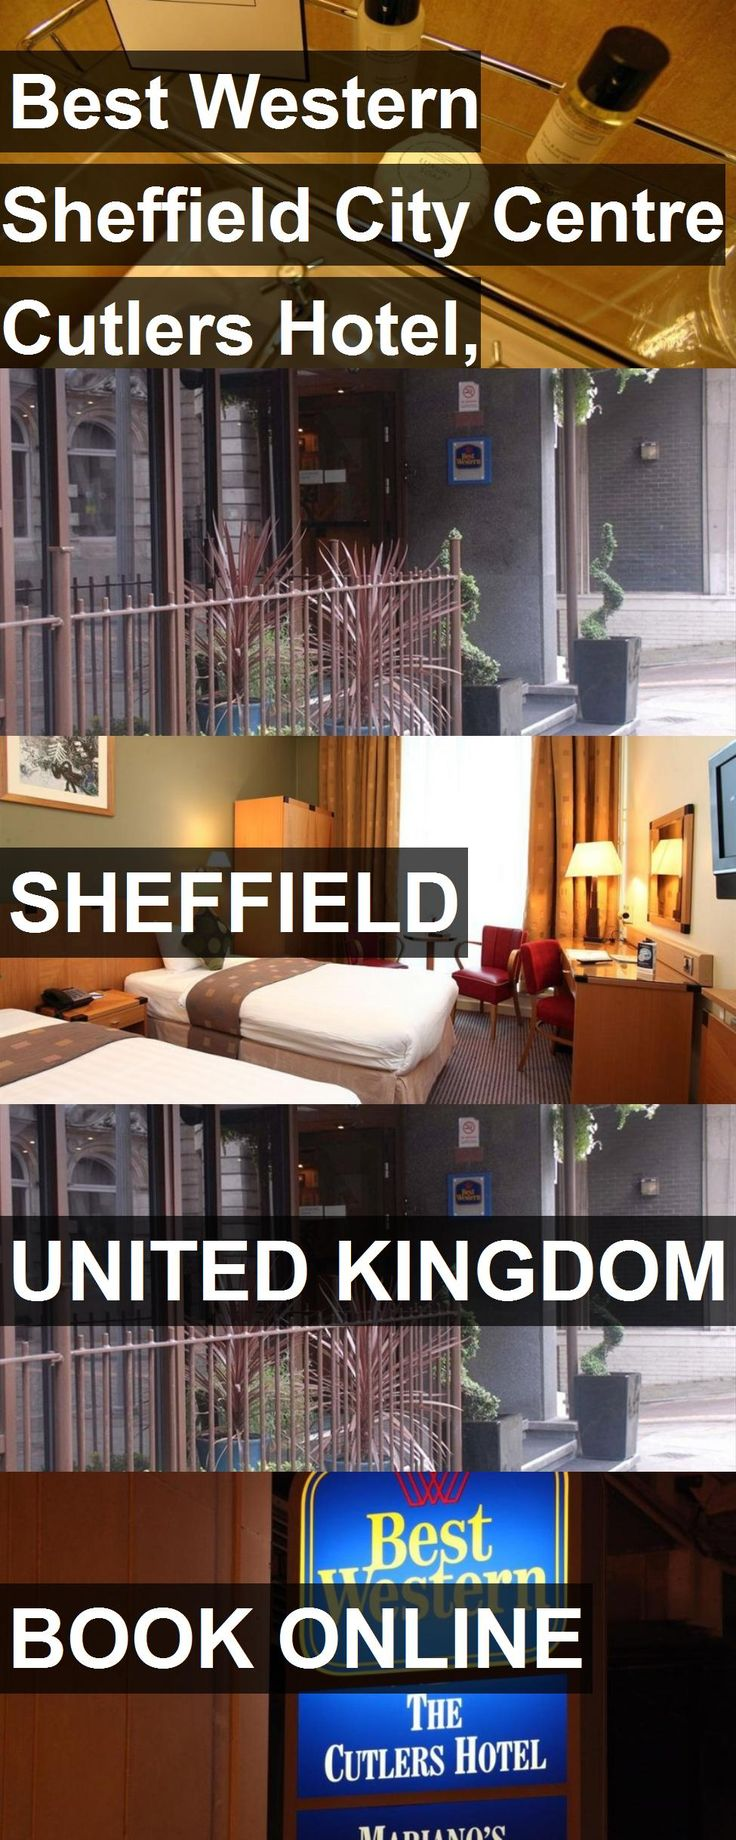 Best Western Sheffield City Centre Cutlers Hotel, Sheffield in Sheffield, United Kingdom. For more information, photos, reviews and best prices please follow the link. #UnitedKingdom #Sheffield #travel #vacation #hotel